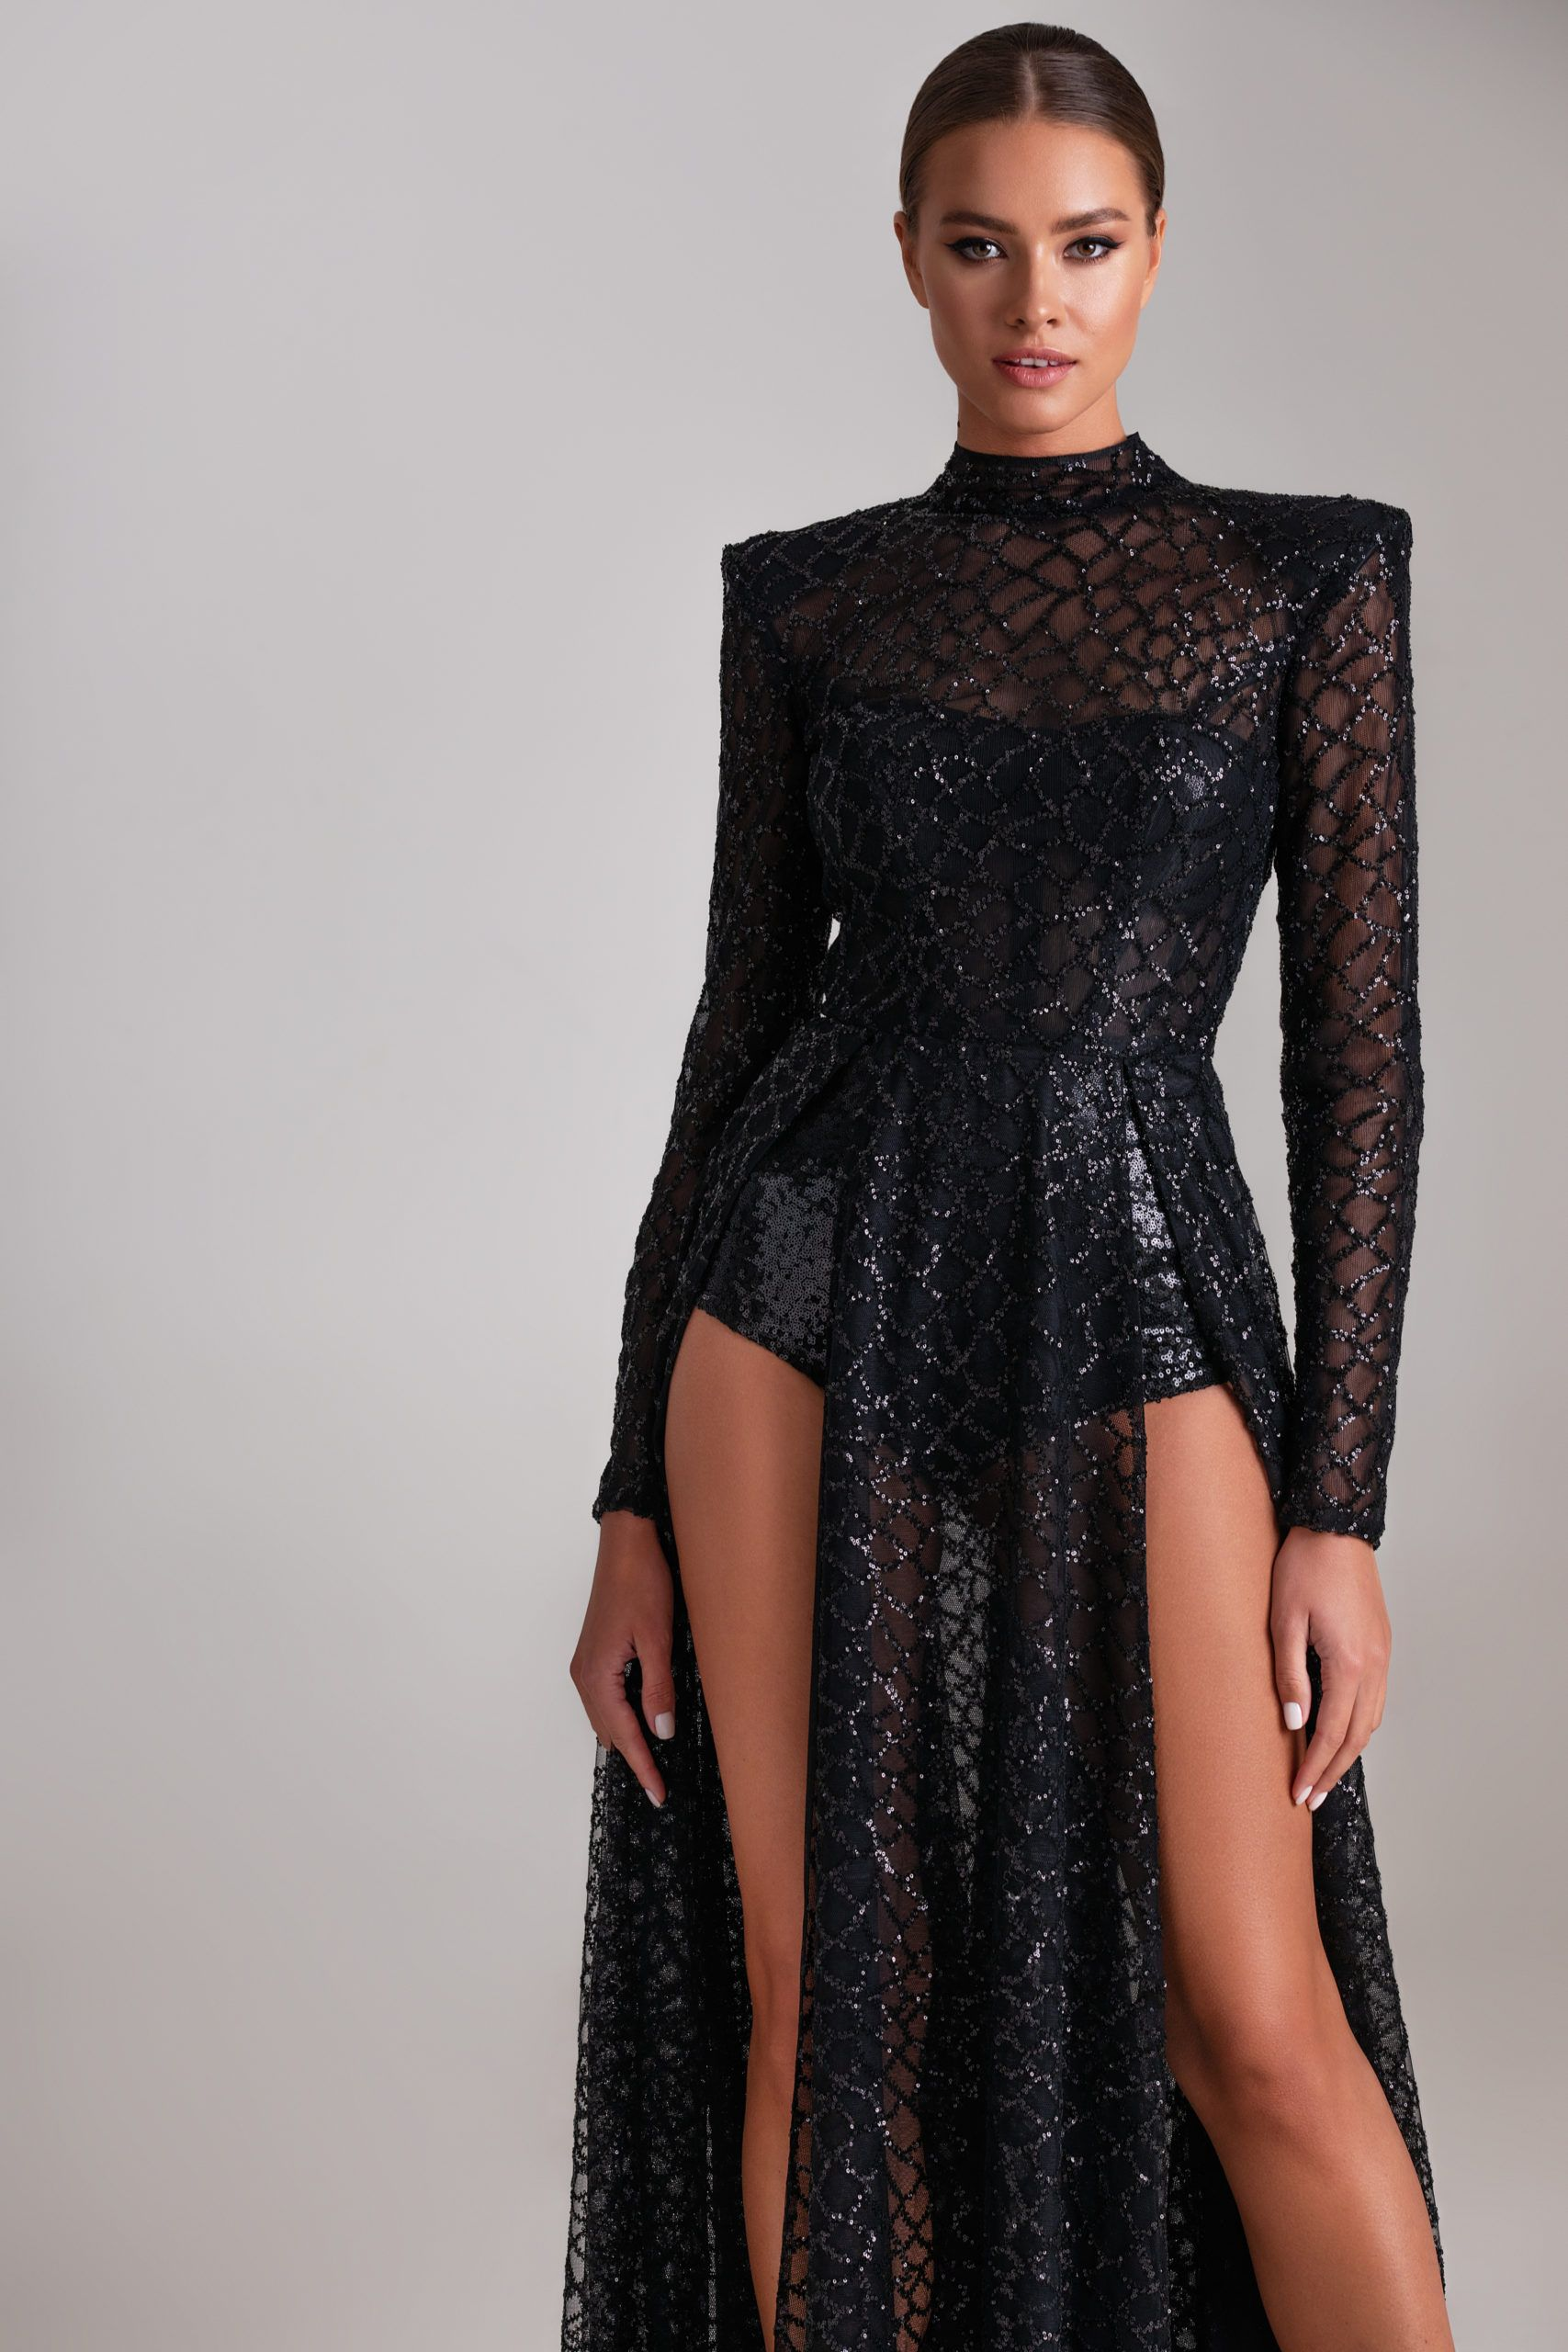 Long Sequenced Lace Dress With Sleeves Open Back And Bodysuit Millanova Black Dresses Classy Lace Dress With Sleeves Lace Dress [ 2560 x 1707 Pixel ]